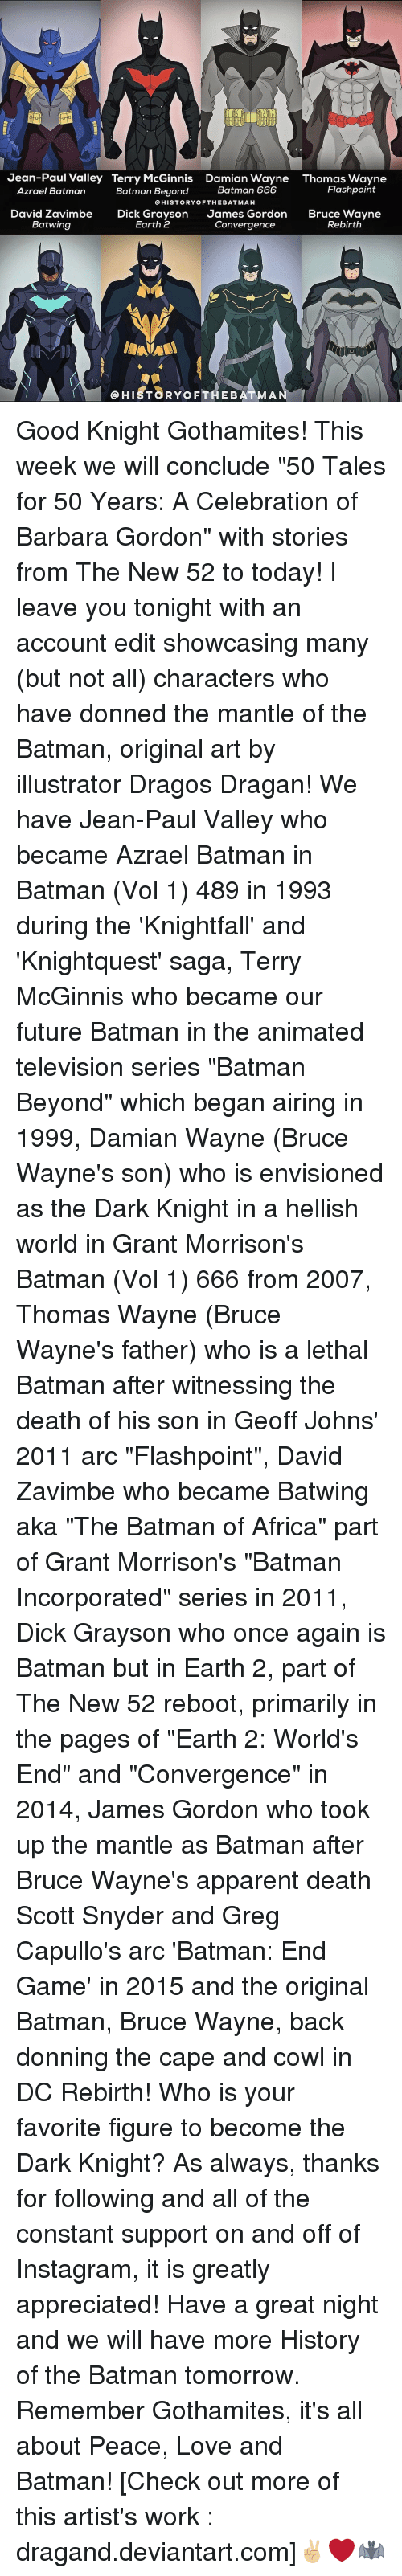 """thomas wayne: Jean-Paul Valley Terry McGinnis Damian Wayne Thomas Wayne  Flashpoint  Batman 666  Azrael Batman  Batman Beyond  HISTORY OF THE BATMAN  David Zavimbe  Dick Grayson  James Gordon  Bruce Wayne  Earth 2  Batwing  Convergence  Rebirth  HIST8RYoF THE BATMA Good Knight Gothamites! This week we will conclude """"50 Tales for 50 Years: A Celebration of Barbara Gordon"""" with stories from The New 52 to today! I leave you tonight with an account edit showcasing many (but not all) characters who have donned the mantle of the Batman, original art by illustrator Dragos Dragan! We have Jean-Paul Valley who became Azrael Batman in Batman (Vol 1) 489 in 1993 during the 'Knightfall' and 'Knightquest' saga, Terry McGinnis who became our future Batman in the animated television series """"Batman Beyond"""" which began airing in 1999, Damian Wayne (Bruce Wayne's son) who is envisioned as the Dark Knight in a hellish world in Grant Morrison's Batman (Vol 1) 666 from 2007, Thomas Wayne (Bruce Wayne's father) who is a lethal Batman after witnessing the death of his son in Geoff Johns' 2011 arc """"Flashpoint"""", David Zavimbe who became Batwing aka """"The Batman of Africa"""" part of Grant Morrison's """"Batman Incorporated"""" series in 2011, Dick Grayson who once again is Batman but in Earth 2, part of The New 52 reboot, primarily in the pages of """"Earth 2: World's End"""" and """"Convergence"""" in 2014, James Gordon who took up the mantle as Batman after Bruce Wayne's apparent death Scott Snyder and Greg Capullo's arc 'Batman: End Game' in 2015 and the original Batman, Bruce Wayne, back donning the cape and cowl in DC Rebirth! Who is your favorite figure to become the Dark Knight? As always, thanks for following and all of the constant support on and off of Instagram, it is greatly appreciated! Have a great night and we will have more History of the Batman tomorrow. Remember Gothamites, it's all about Peace, Love and Batman! [Check out more of this artist's work : dragand.deviantart.com]✌🏼❤🦇"""